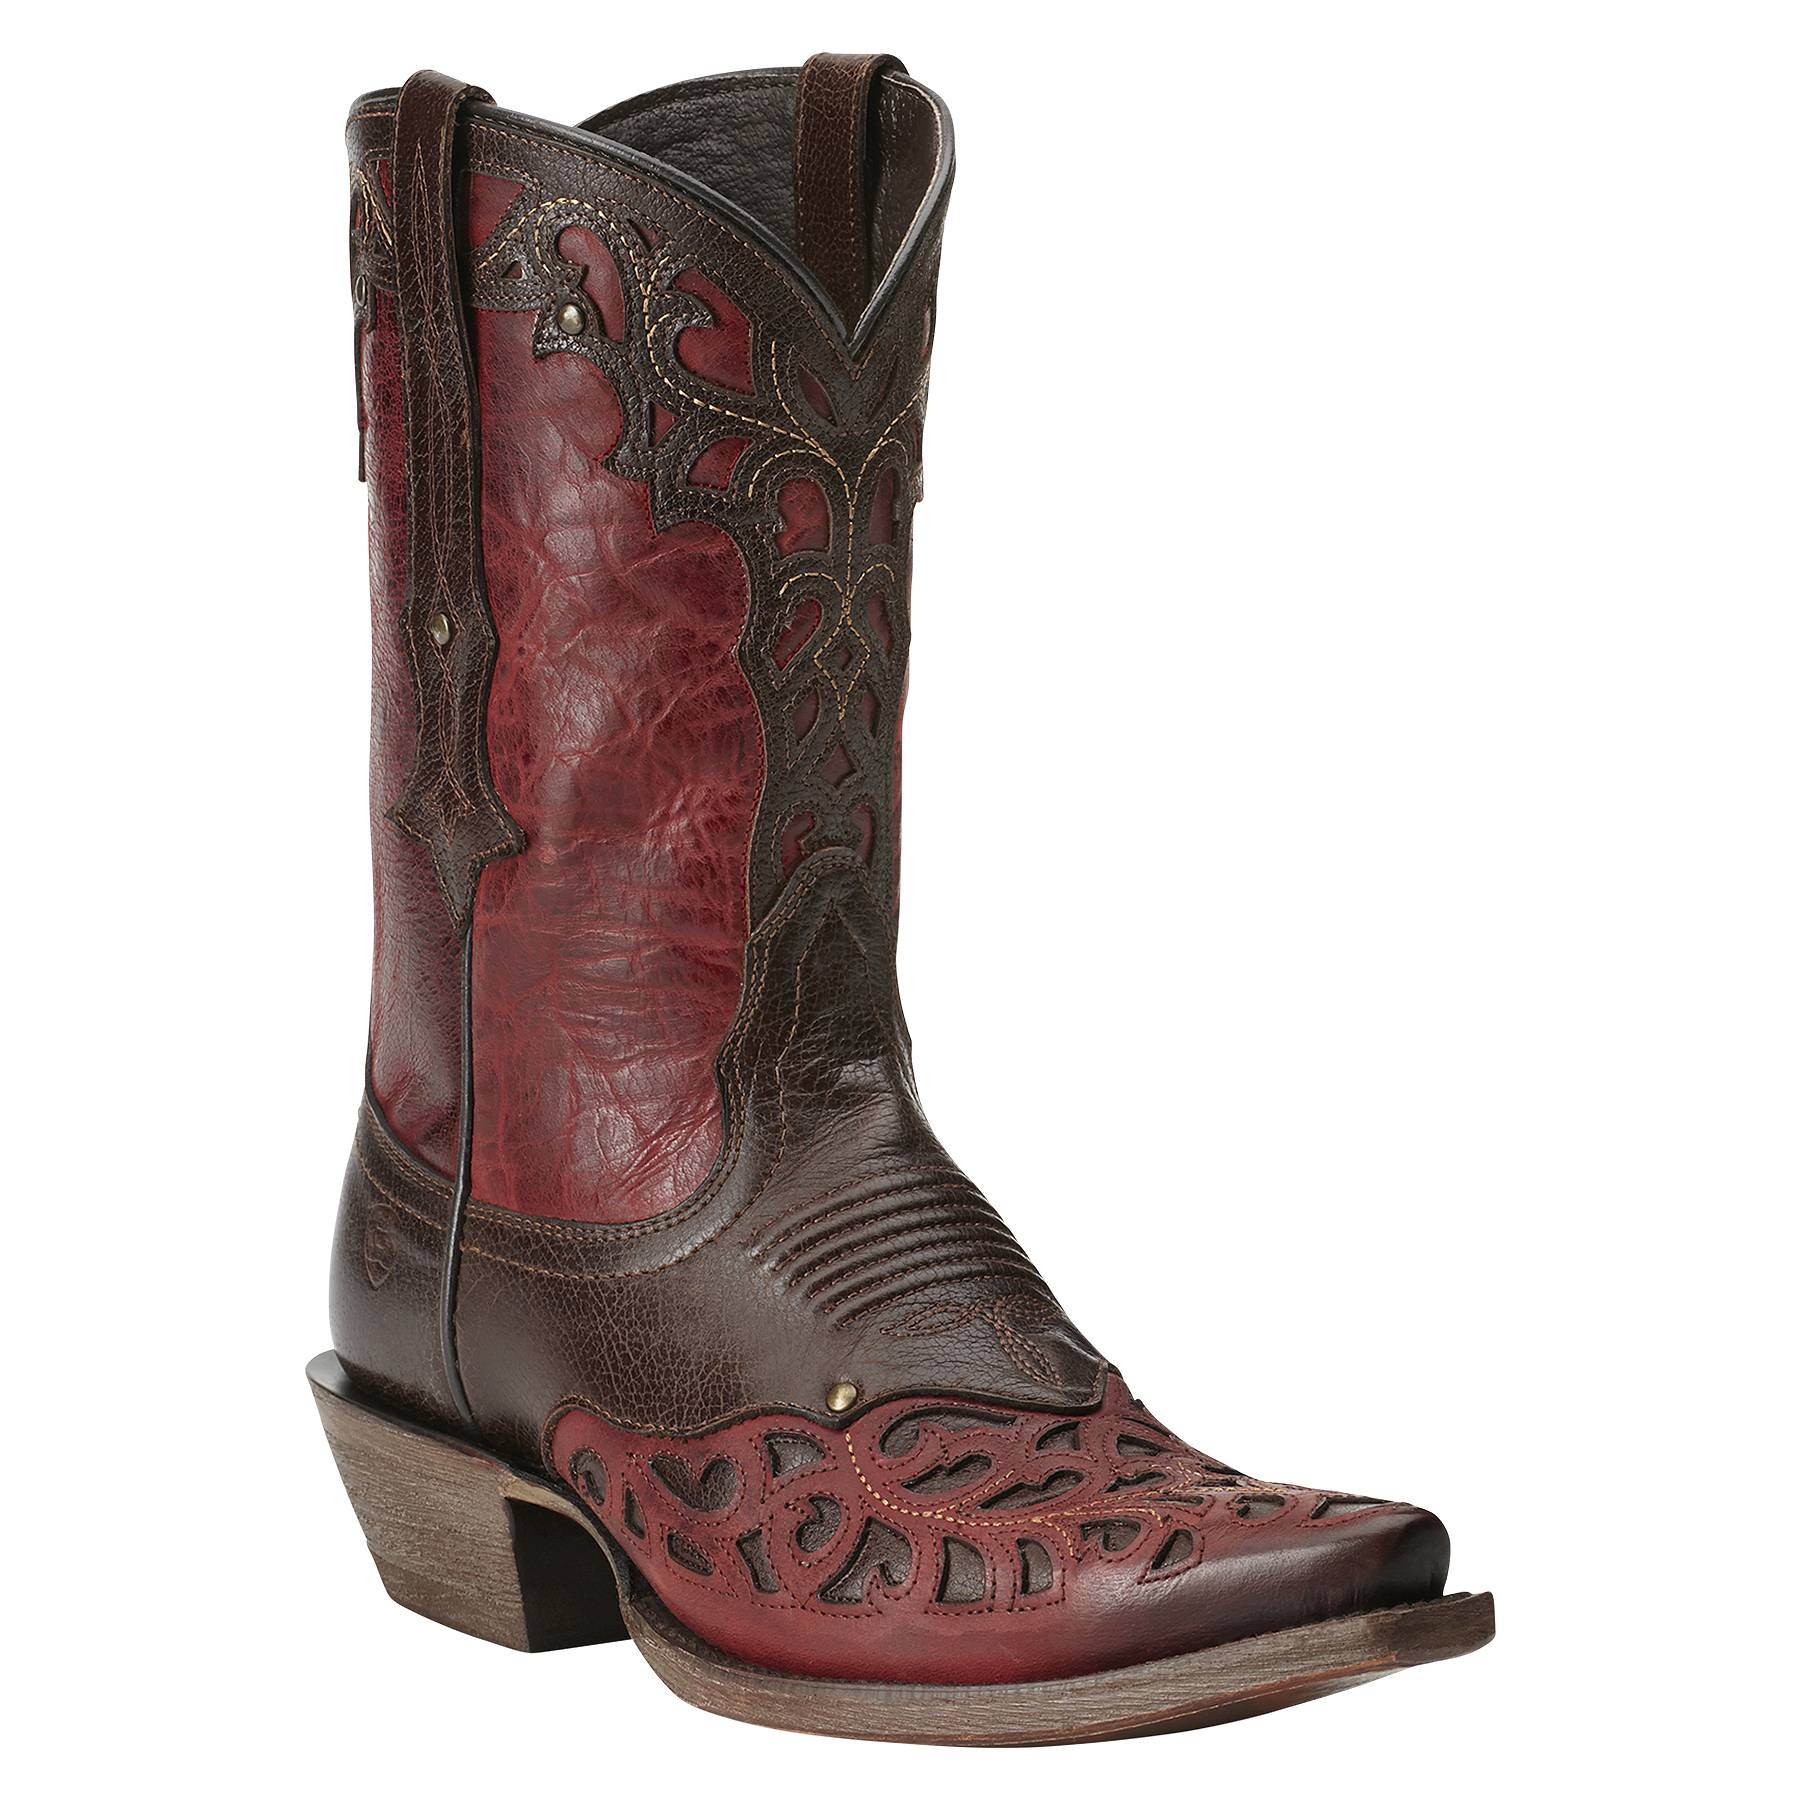 OPEN BOX ITEM: Ariat Women's Vera Cruz Western Boot